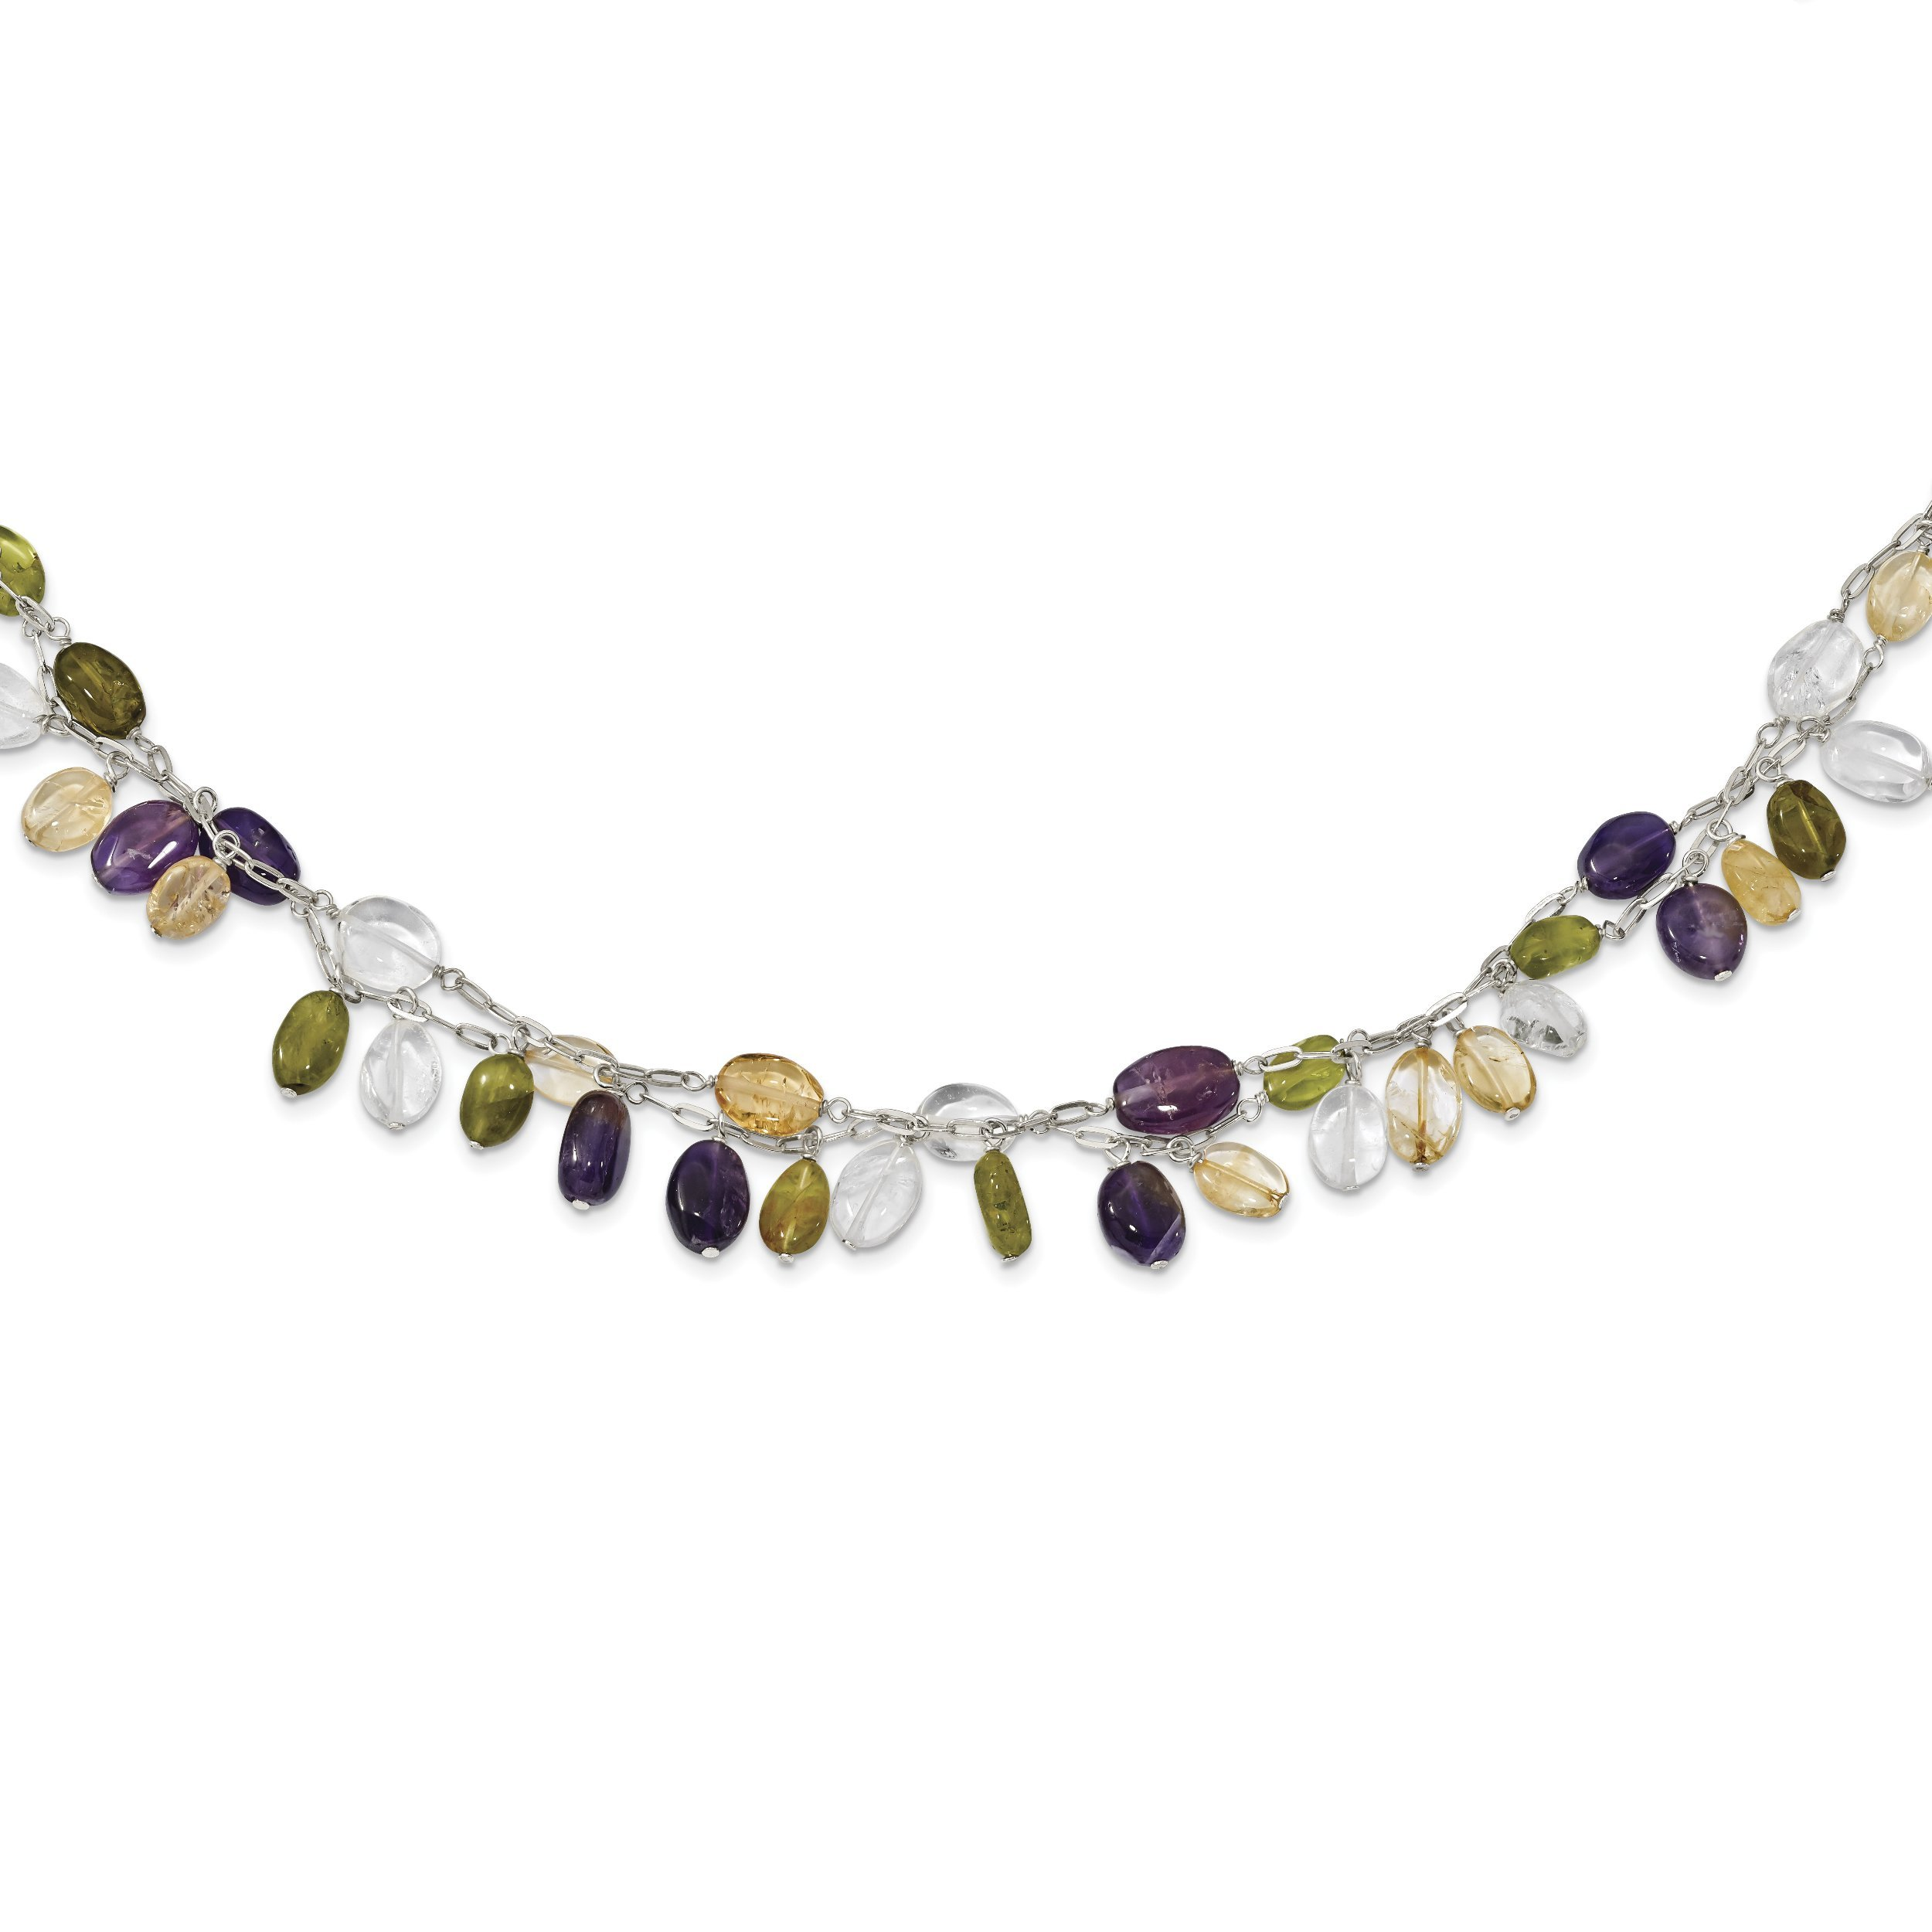 ICE CARATS 925 Sterling Silver Amethyst/citrine/peridot/rock Quartz 2 Strand Inch Extension Chain Necklace Natural Stone Fine Jewelry Gift Set For Women Heart